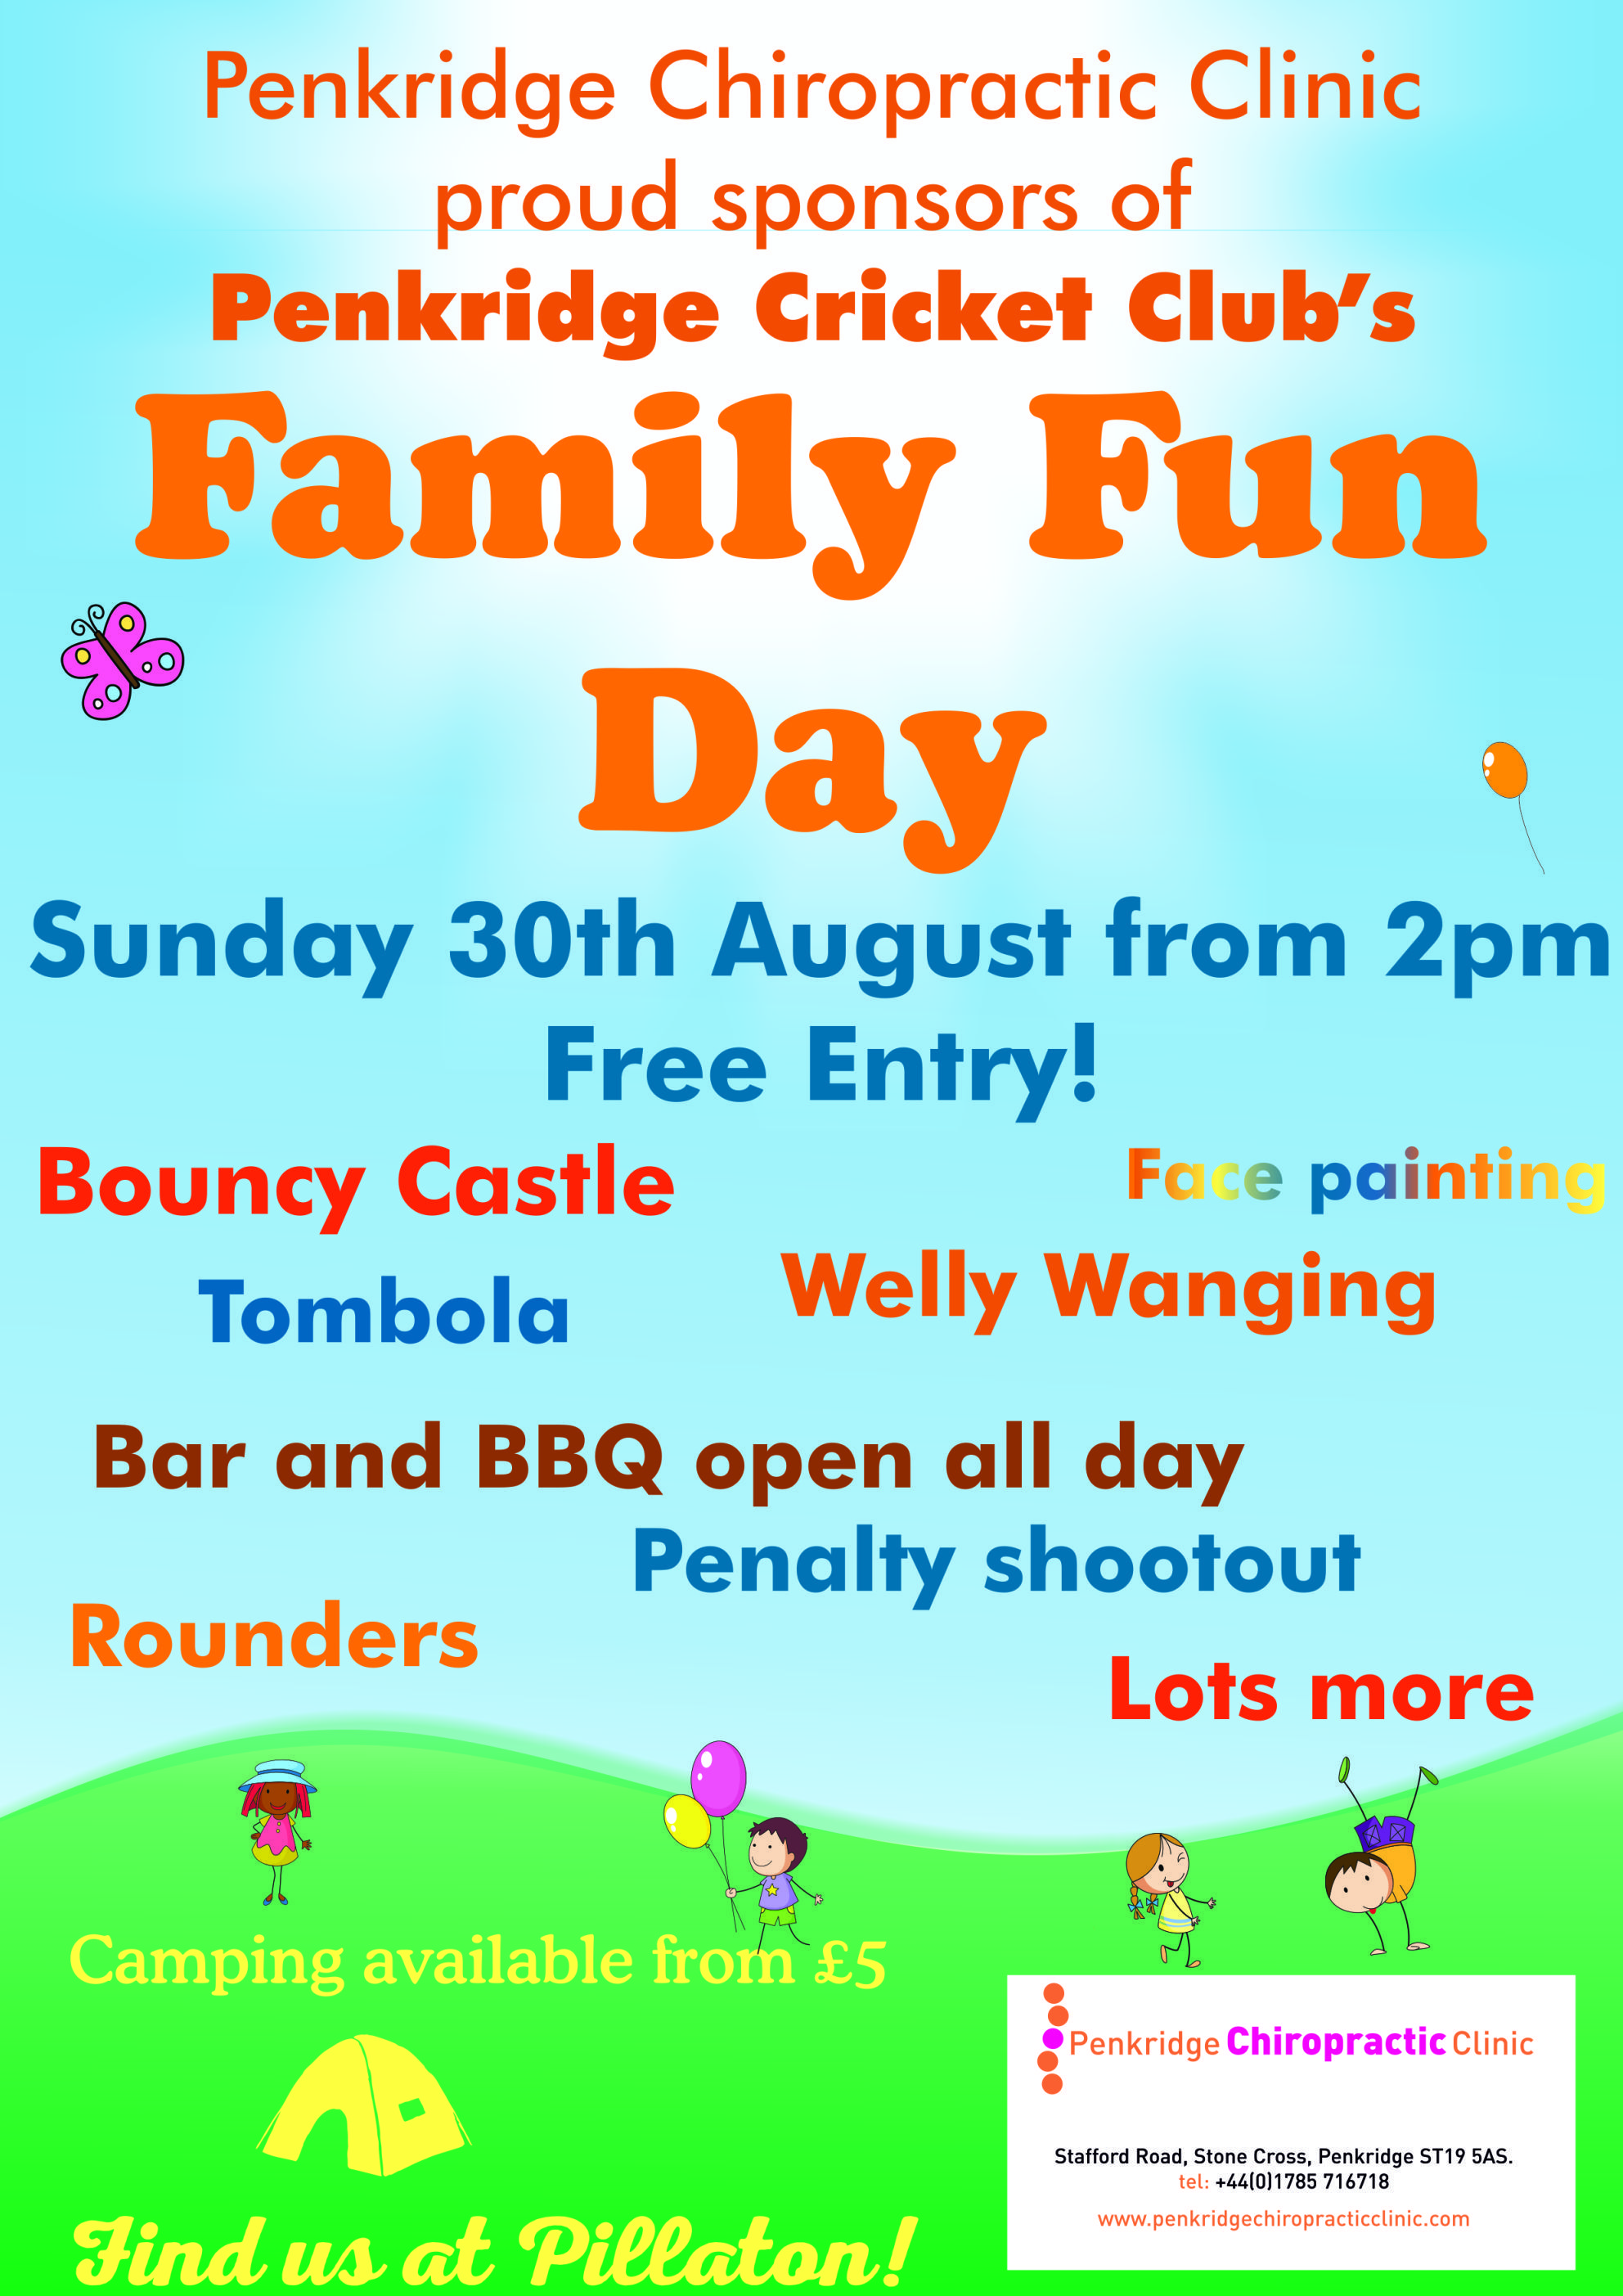 Family Fun Day Poster For Penkridge Cricket Club A Summer Time Theme Fete Fayre Using Cooper Black And Futura Family Fun Day Family Fun Cricket Club